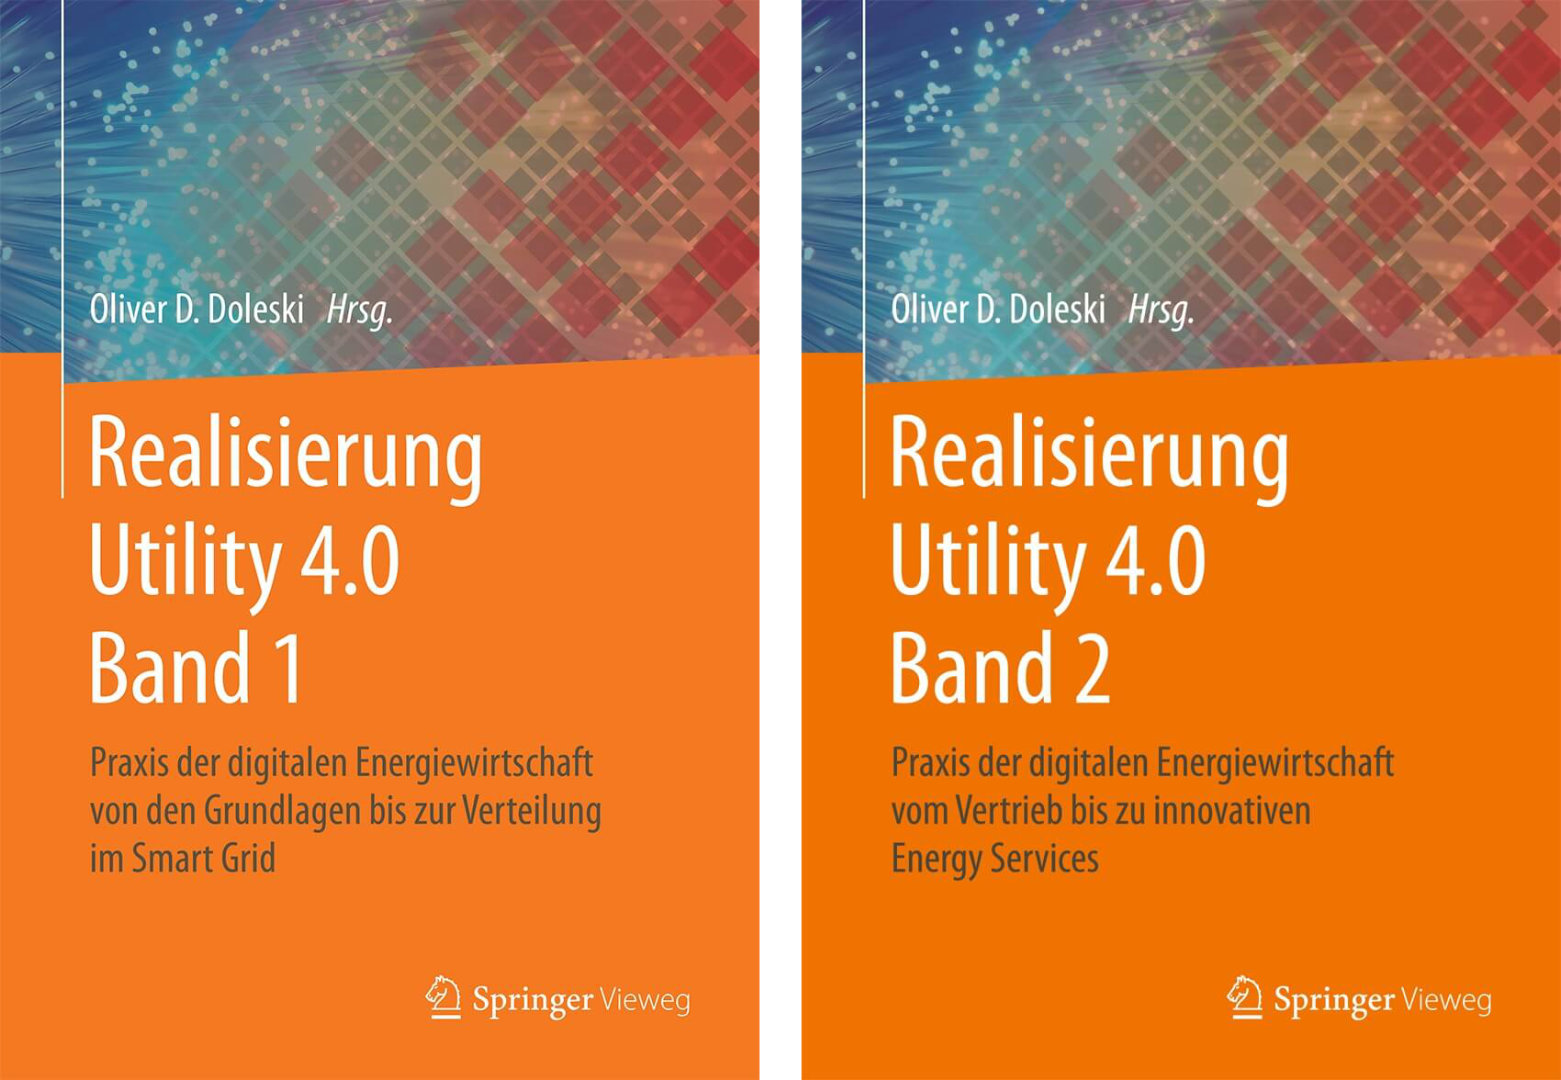 Der Doppelband Utility 4.0